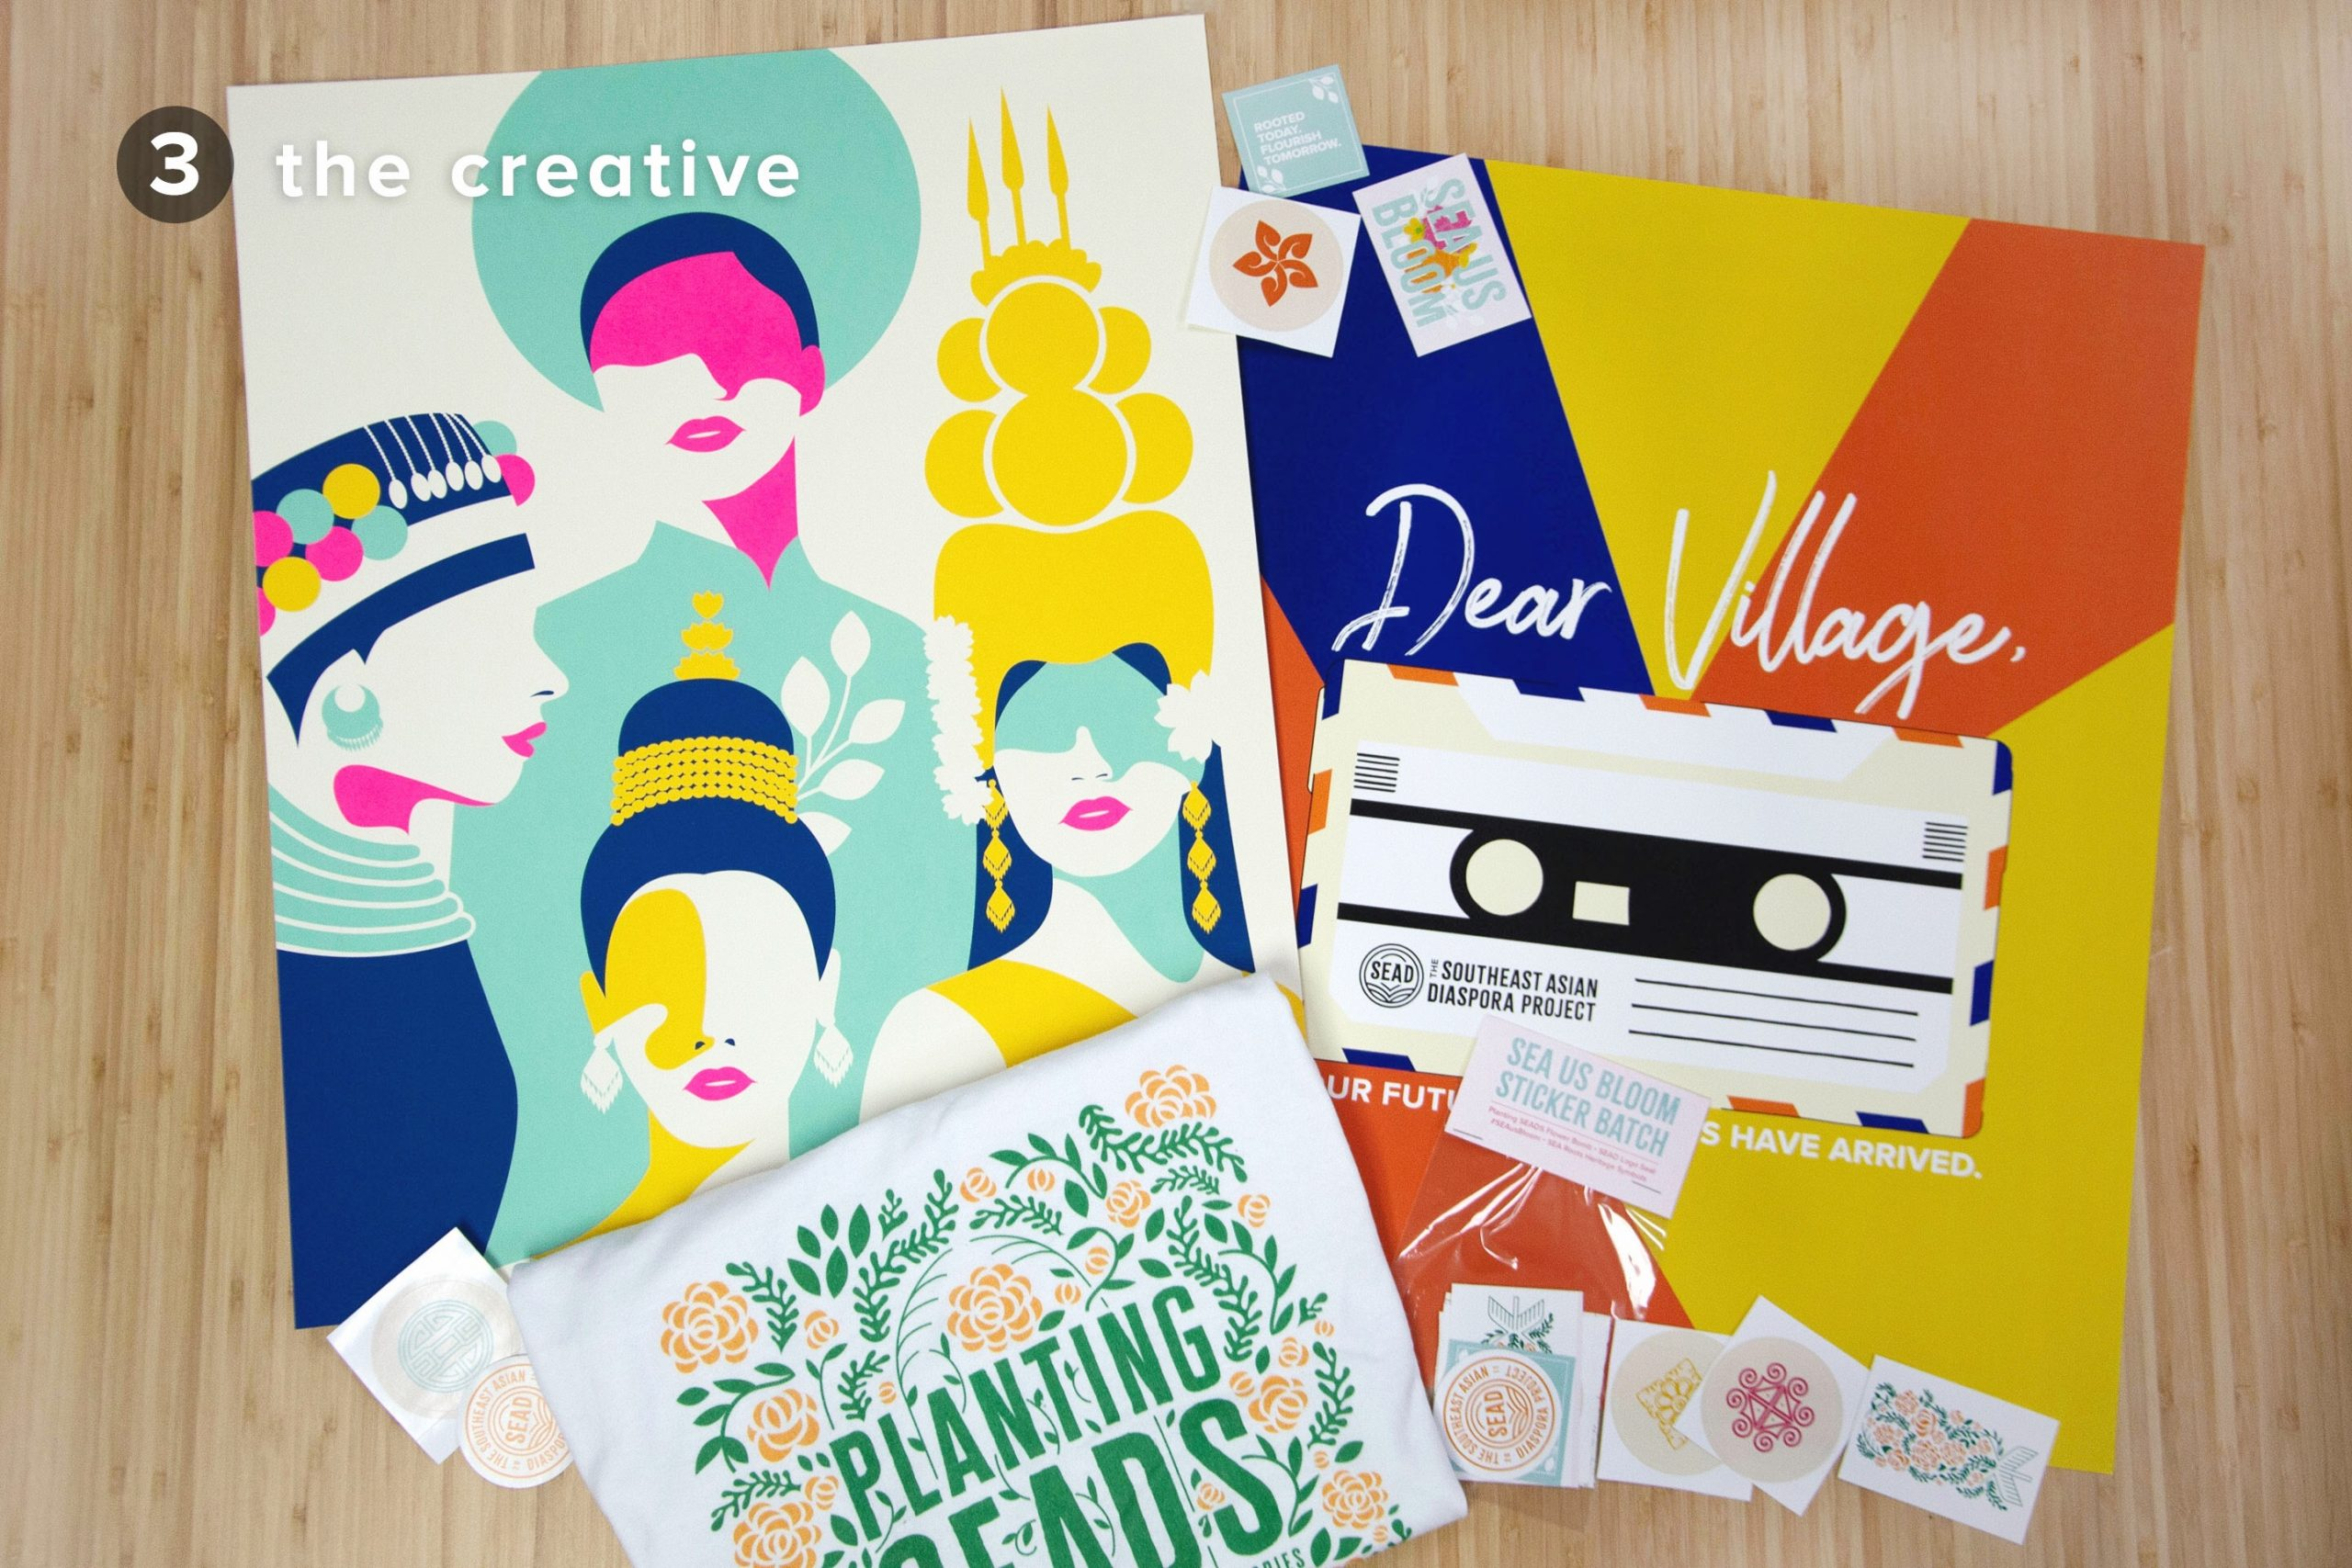 The Creative: SEA Queens poster, Dear Village poster, Planting SEADS t-shirt, SEA Us Bloom sticker batch